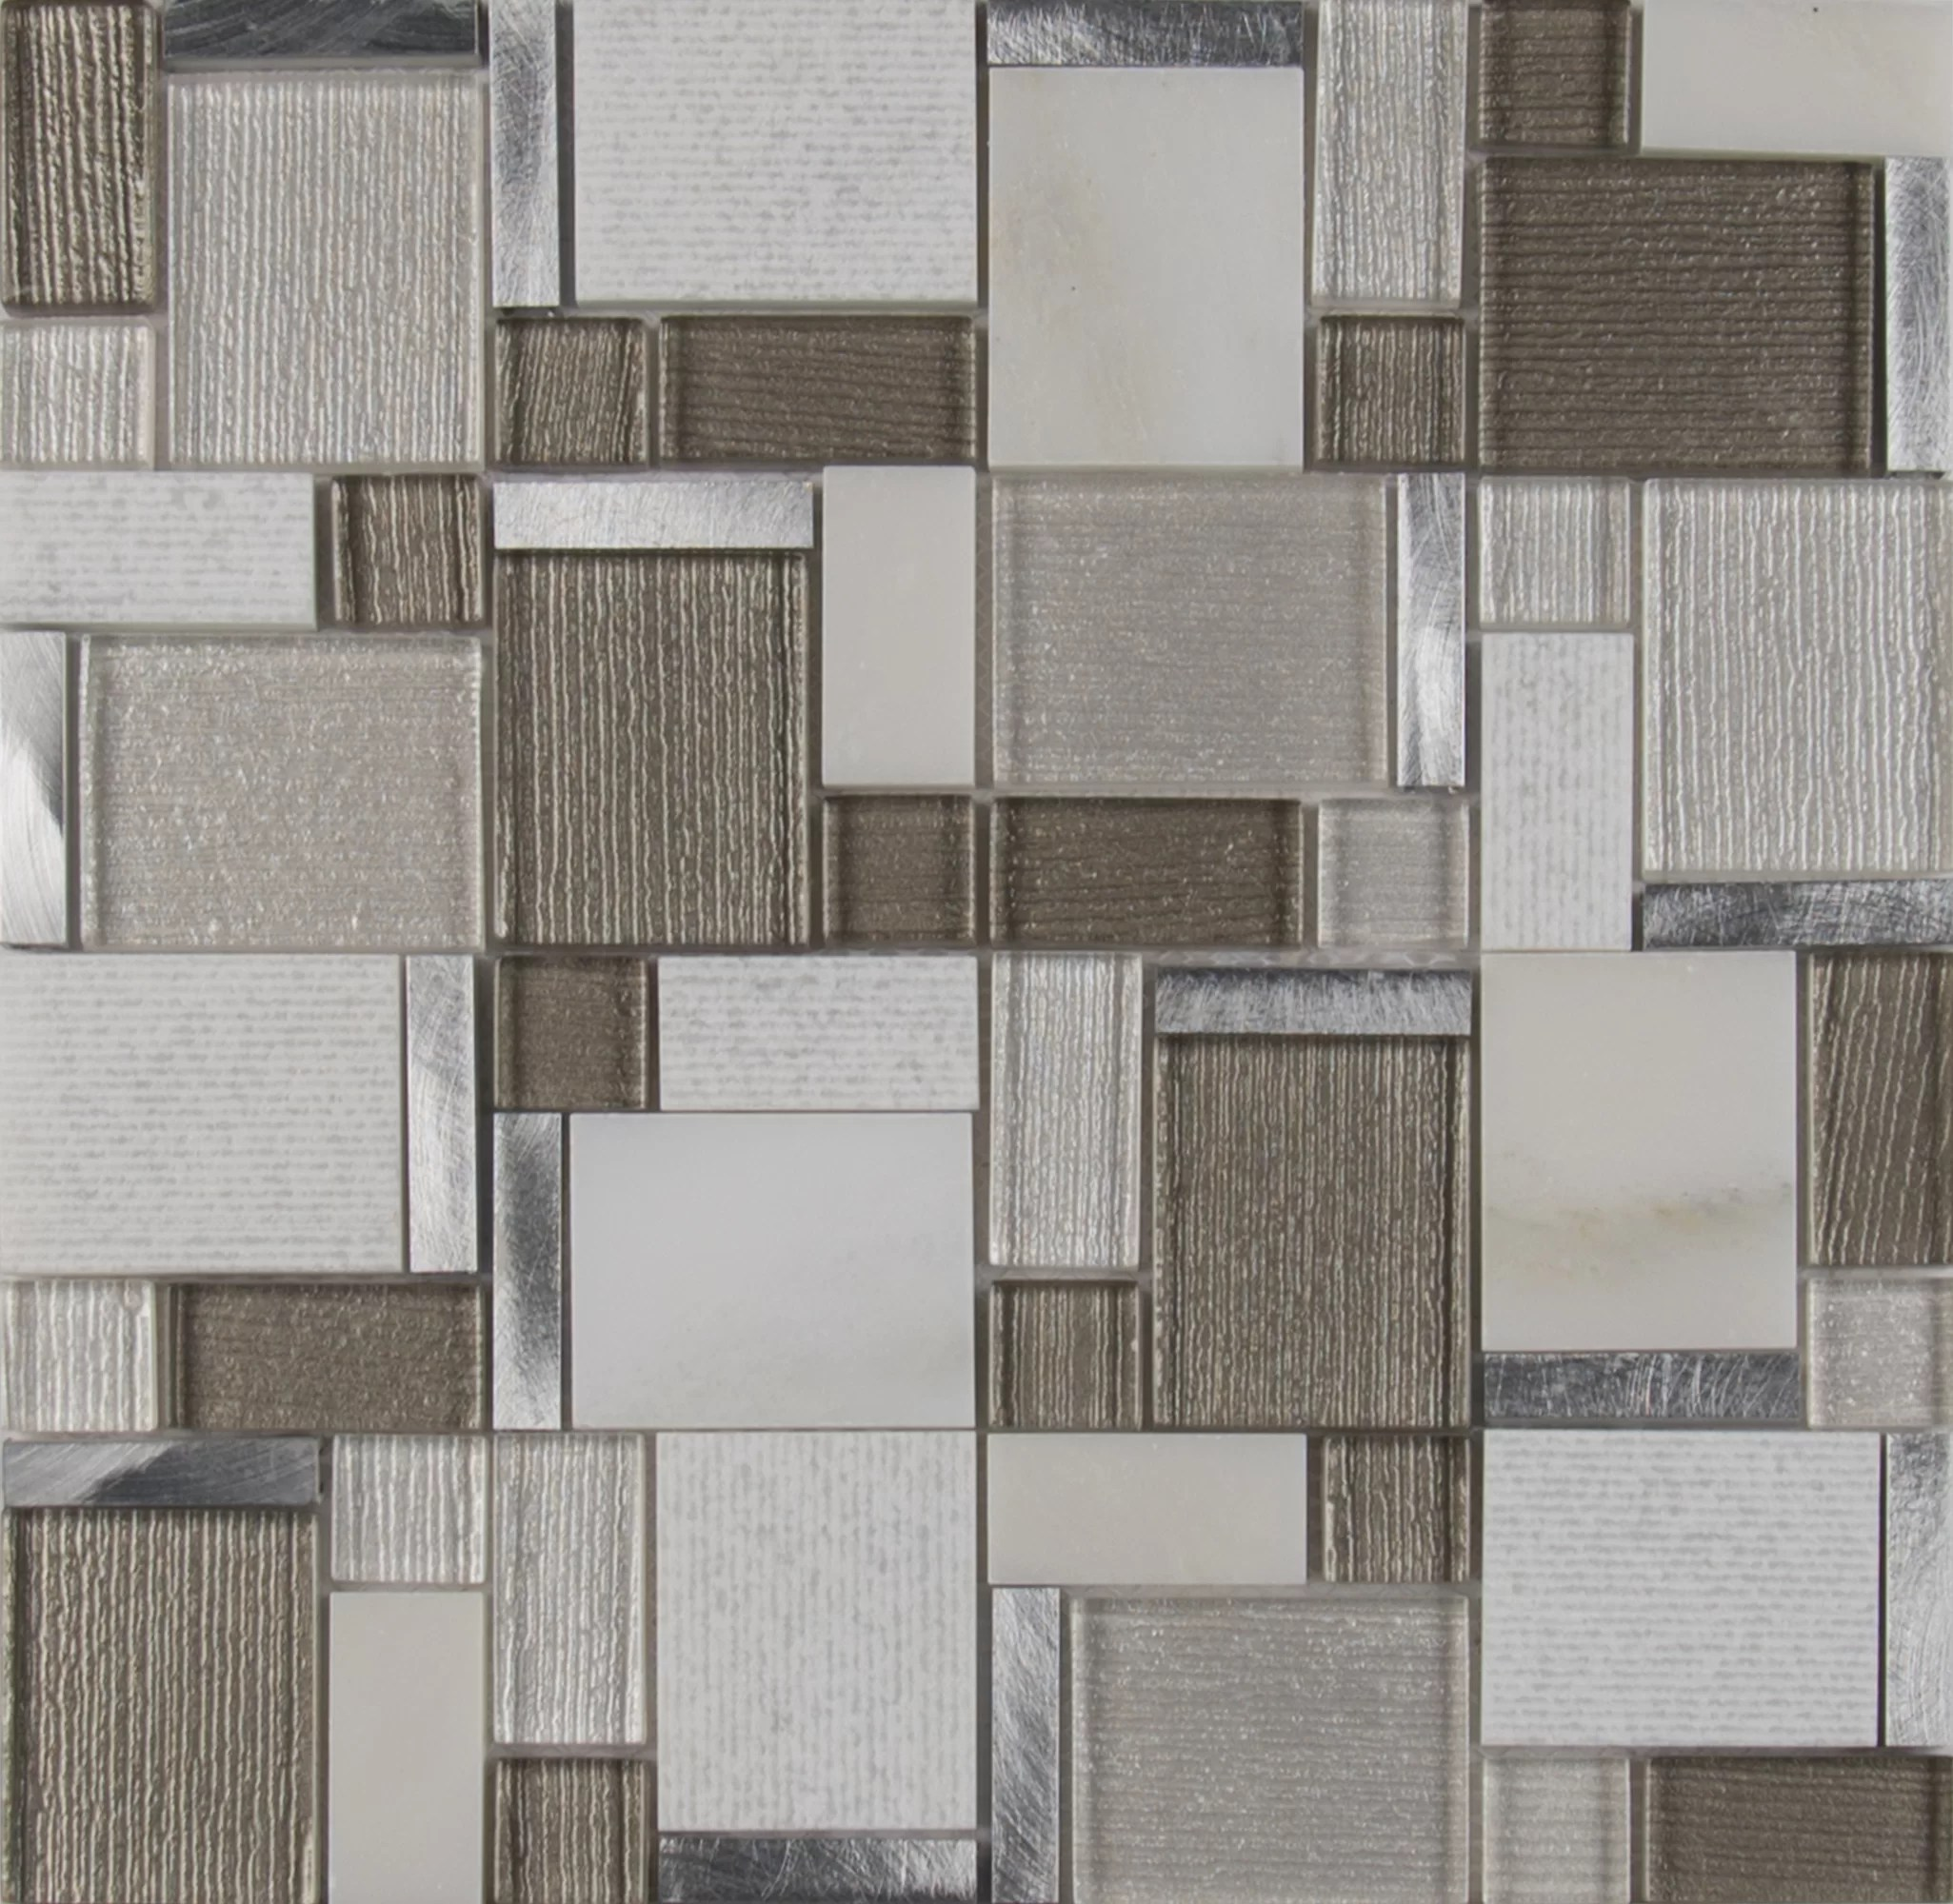 magica random sized glass stone mosaic tile in gray brown